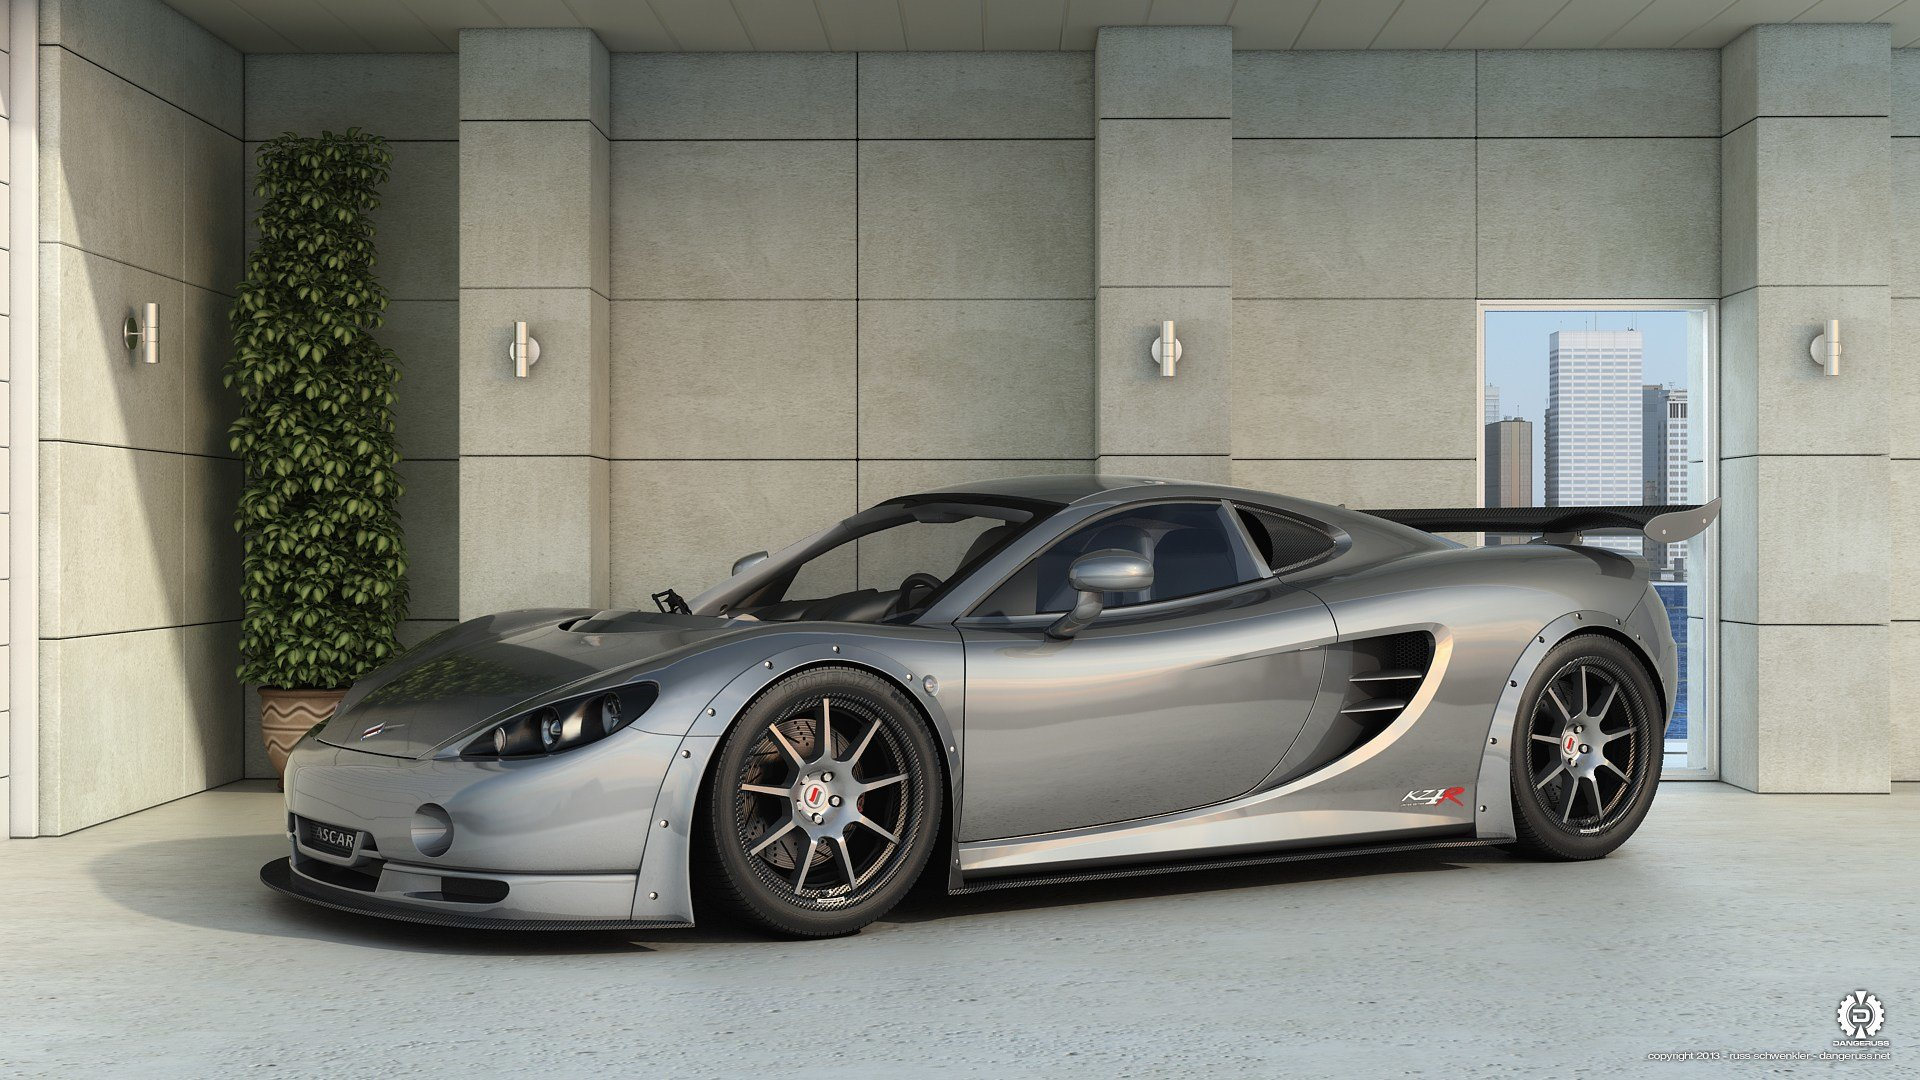 Latest 2012 Ascari Kz1R Hd Wallpaper Background Image Free Download